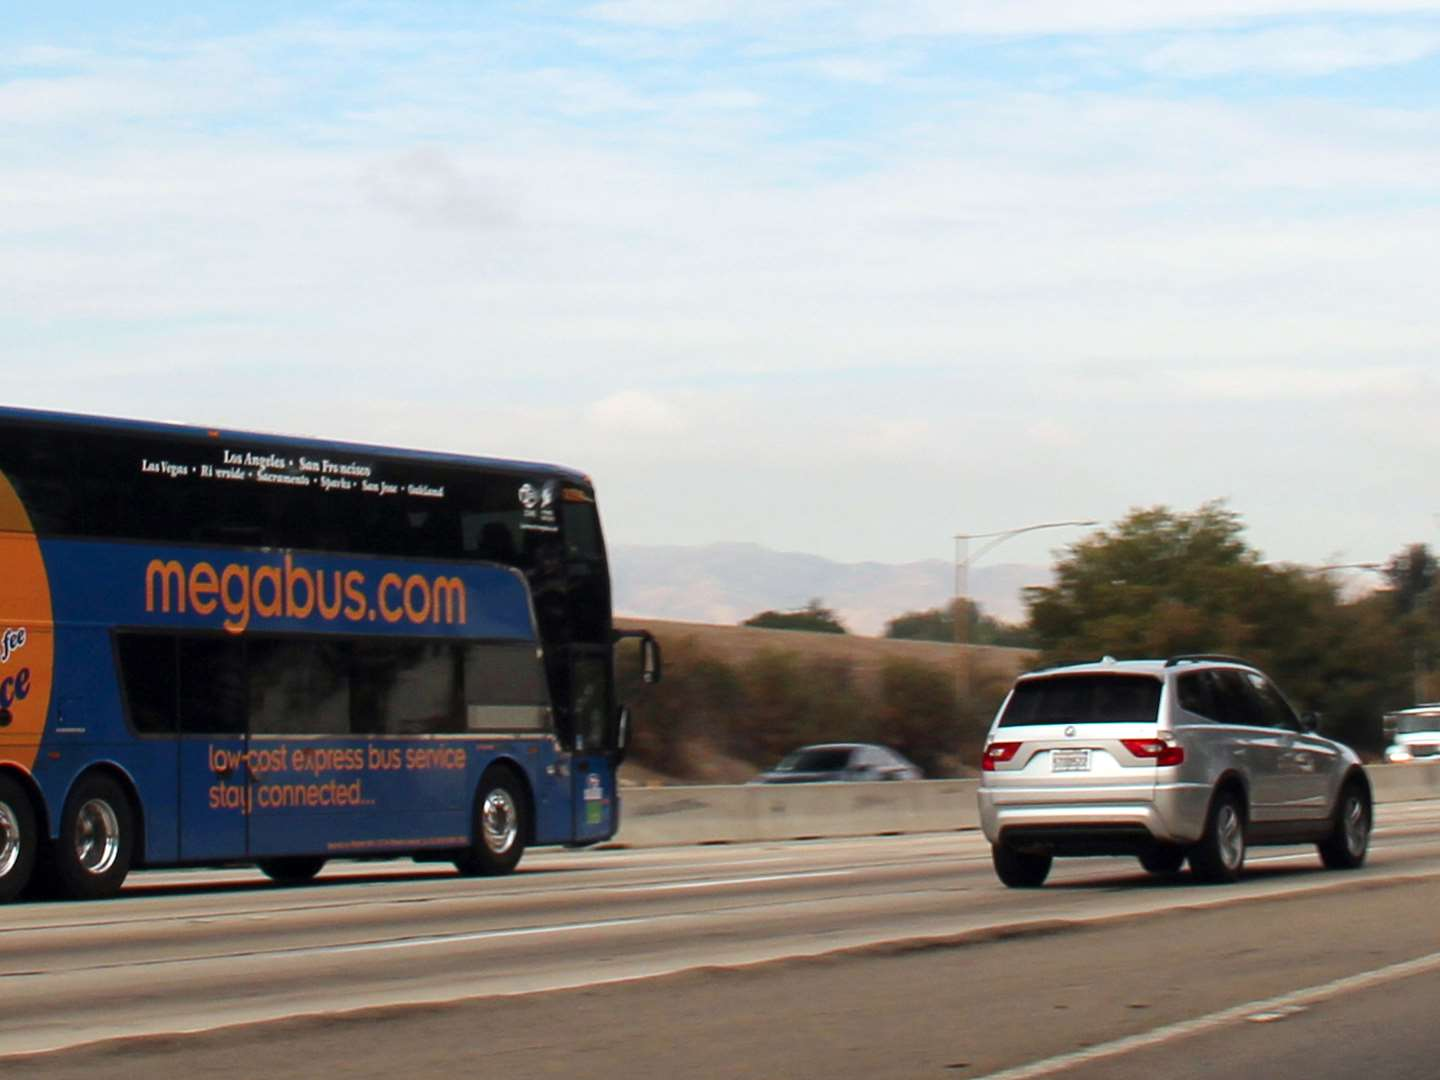 megabus traveling on the highway